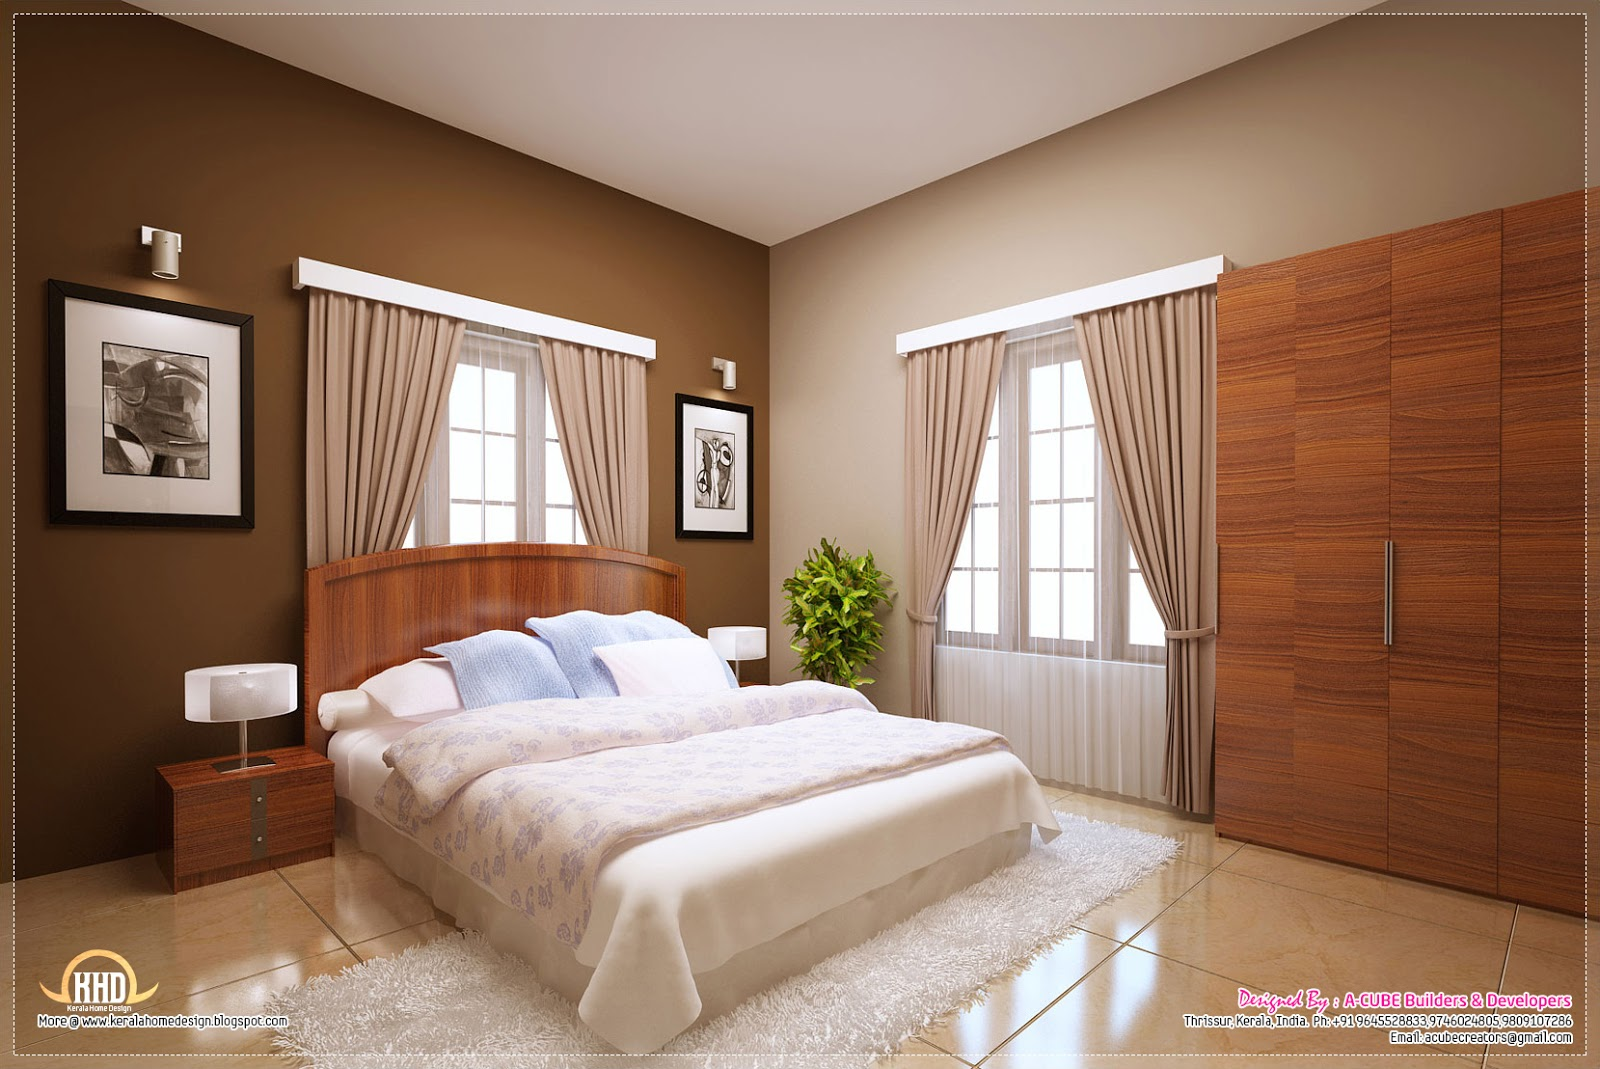 Awesome interior decoration ideas kerala home design and floor plans - Interior designing bedroom ...